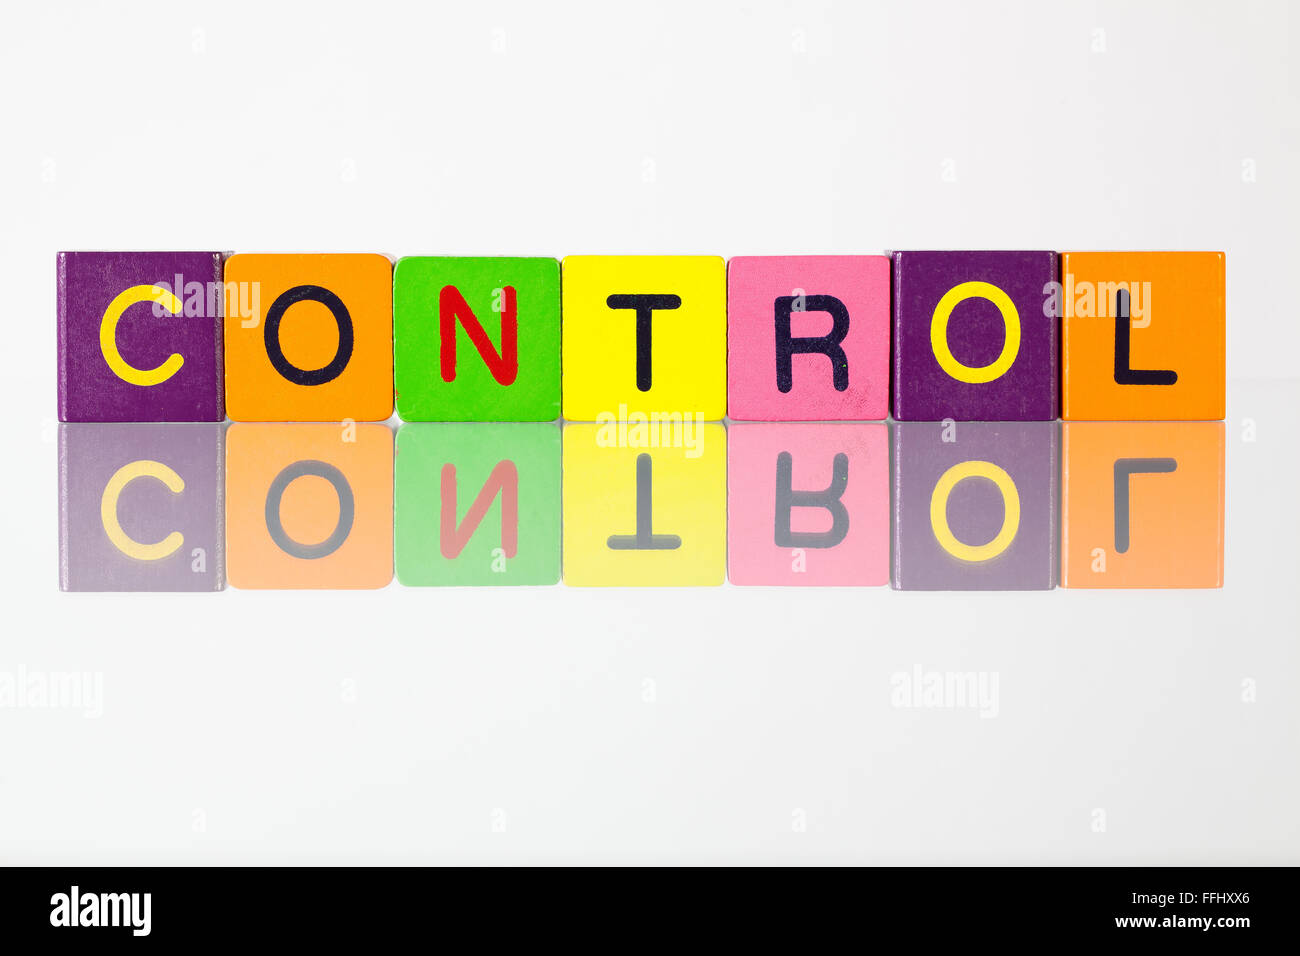 Control - an inscription from children's wooden blocks - Stock Image